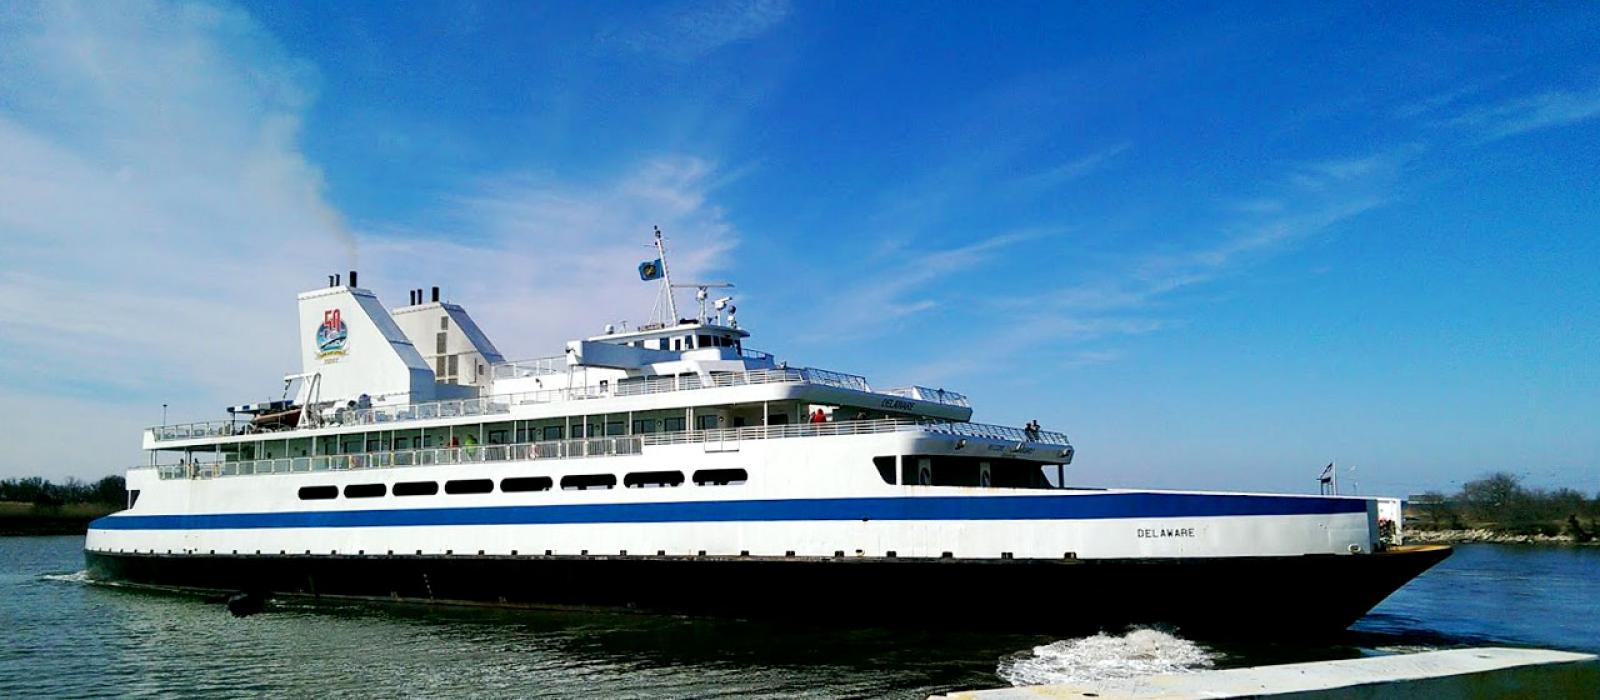 Cape May-Lewes Ferry | Passenger & Car Ferry Across the